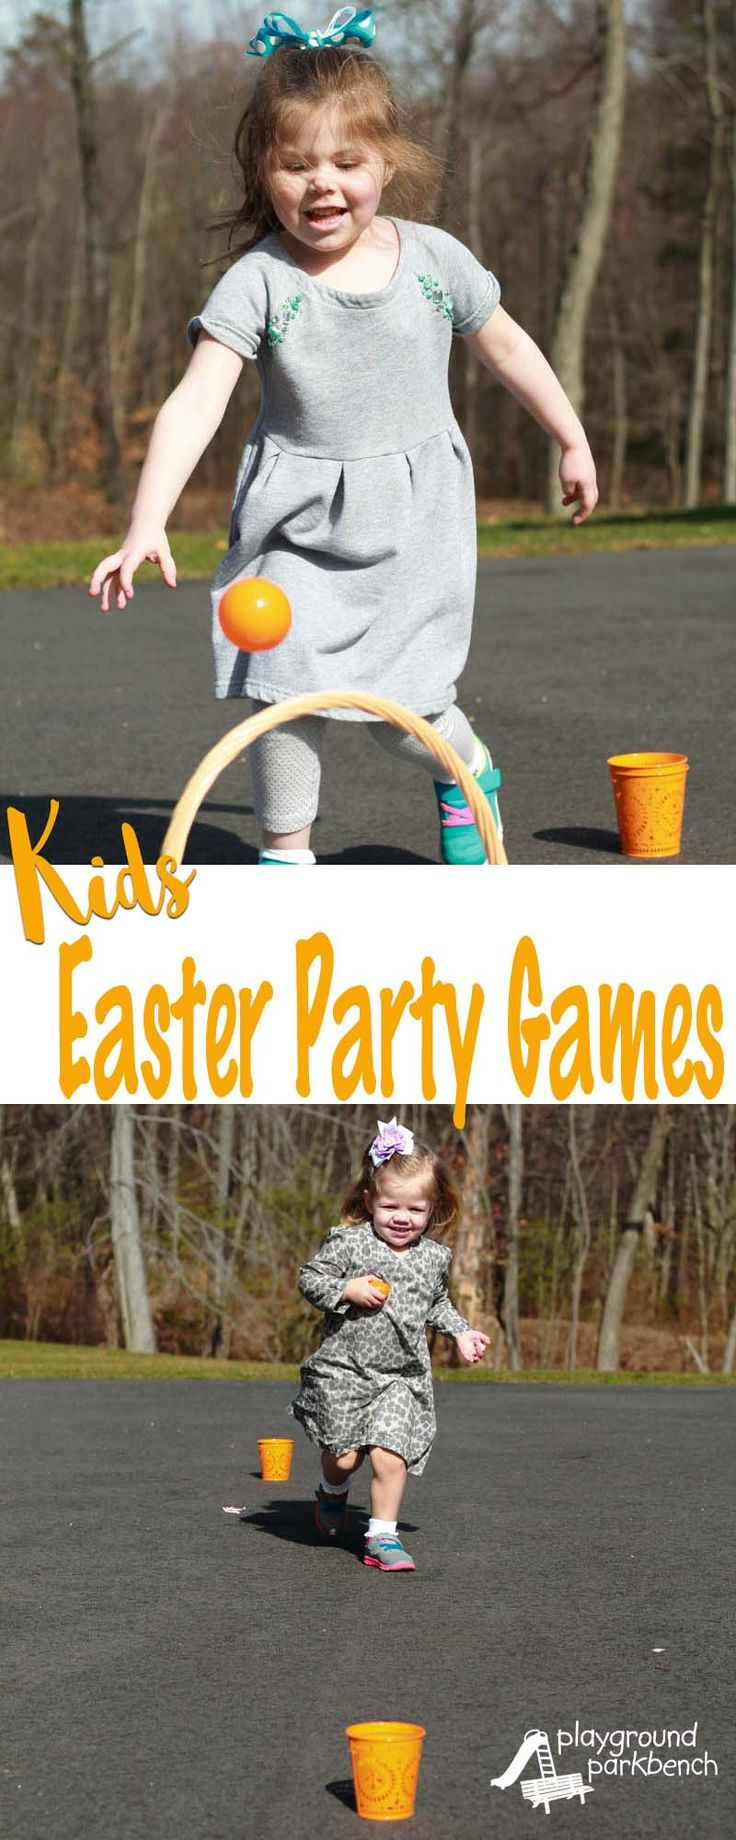 Need some party game ideas or gross motor challenges for your child's Easter Party?  These Kids Easter Party Games are sure to get your toddler or preschooler moving, and burn off all their chocolate bunny sugar high!  Great for preschool parties or Easter Sunday after the egg hunt. | Easter | Easter Games | For Kids | Gross Motor Skills | Toddlers | Preschool